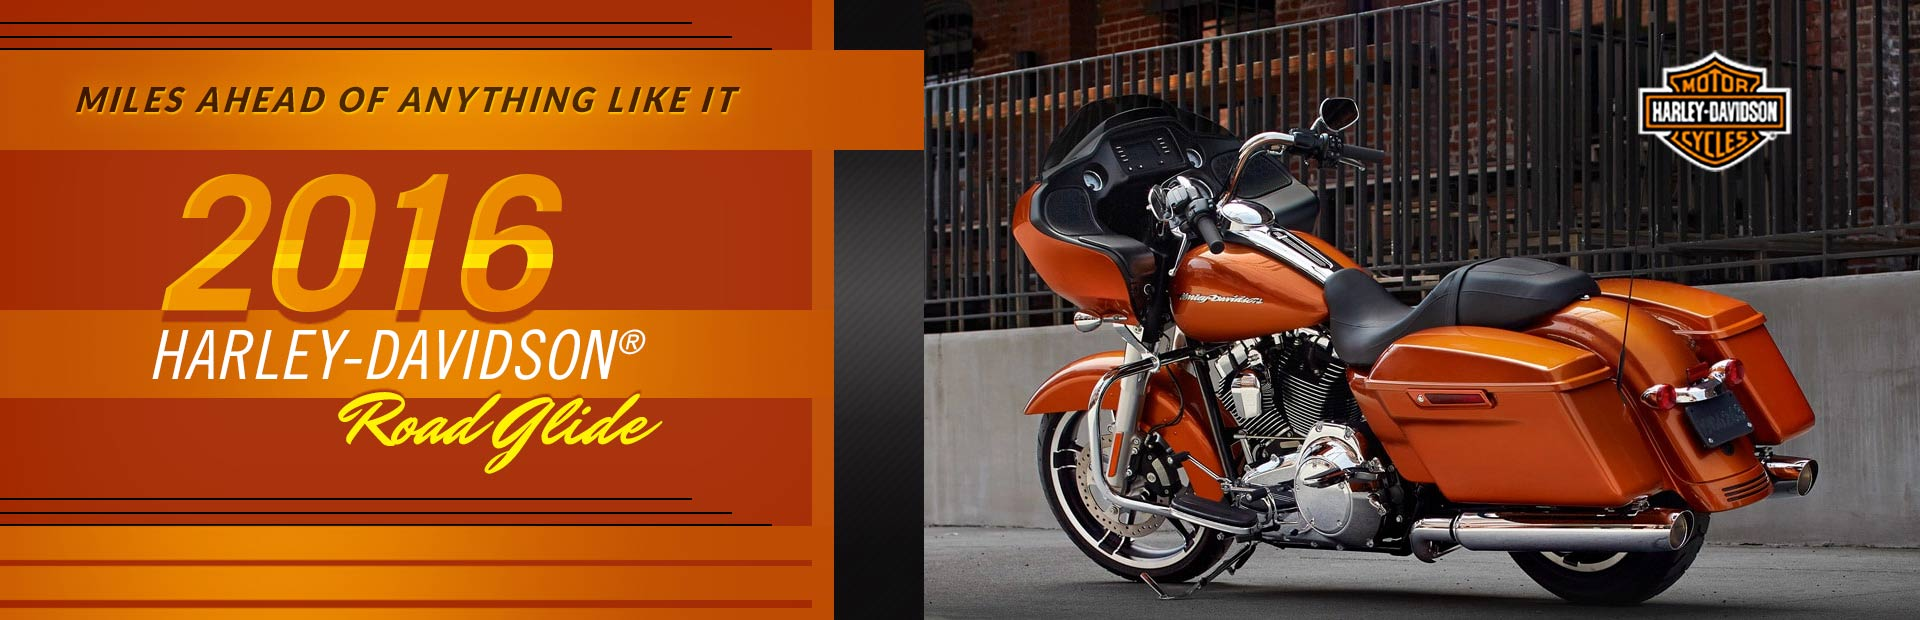 2016 Harley-Davidson® Road Glide Motorcycles: Click here to view the models.